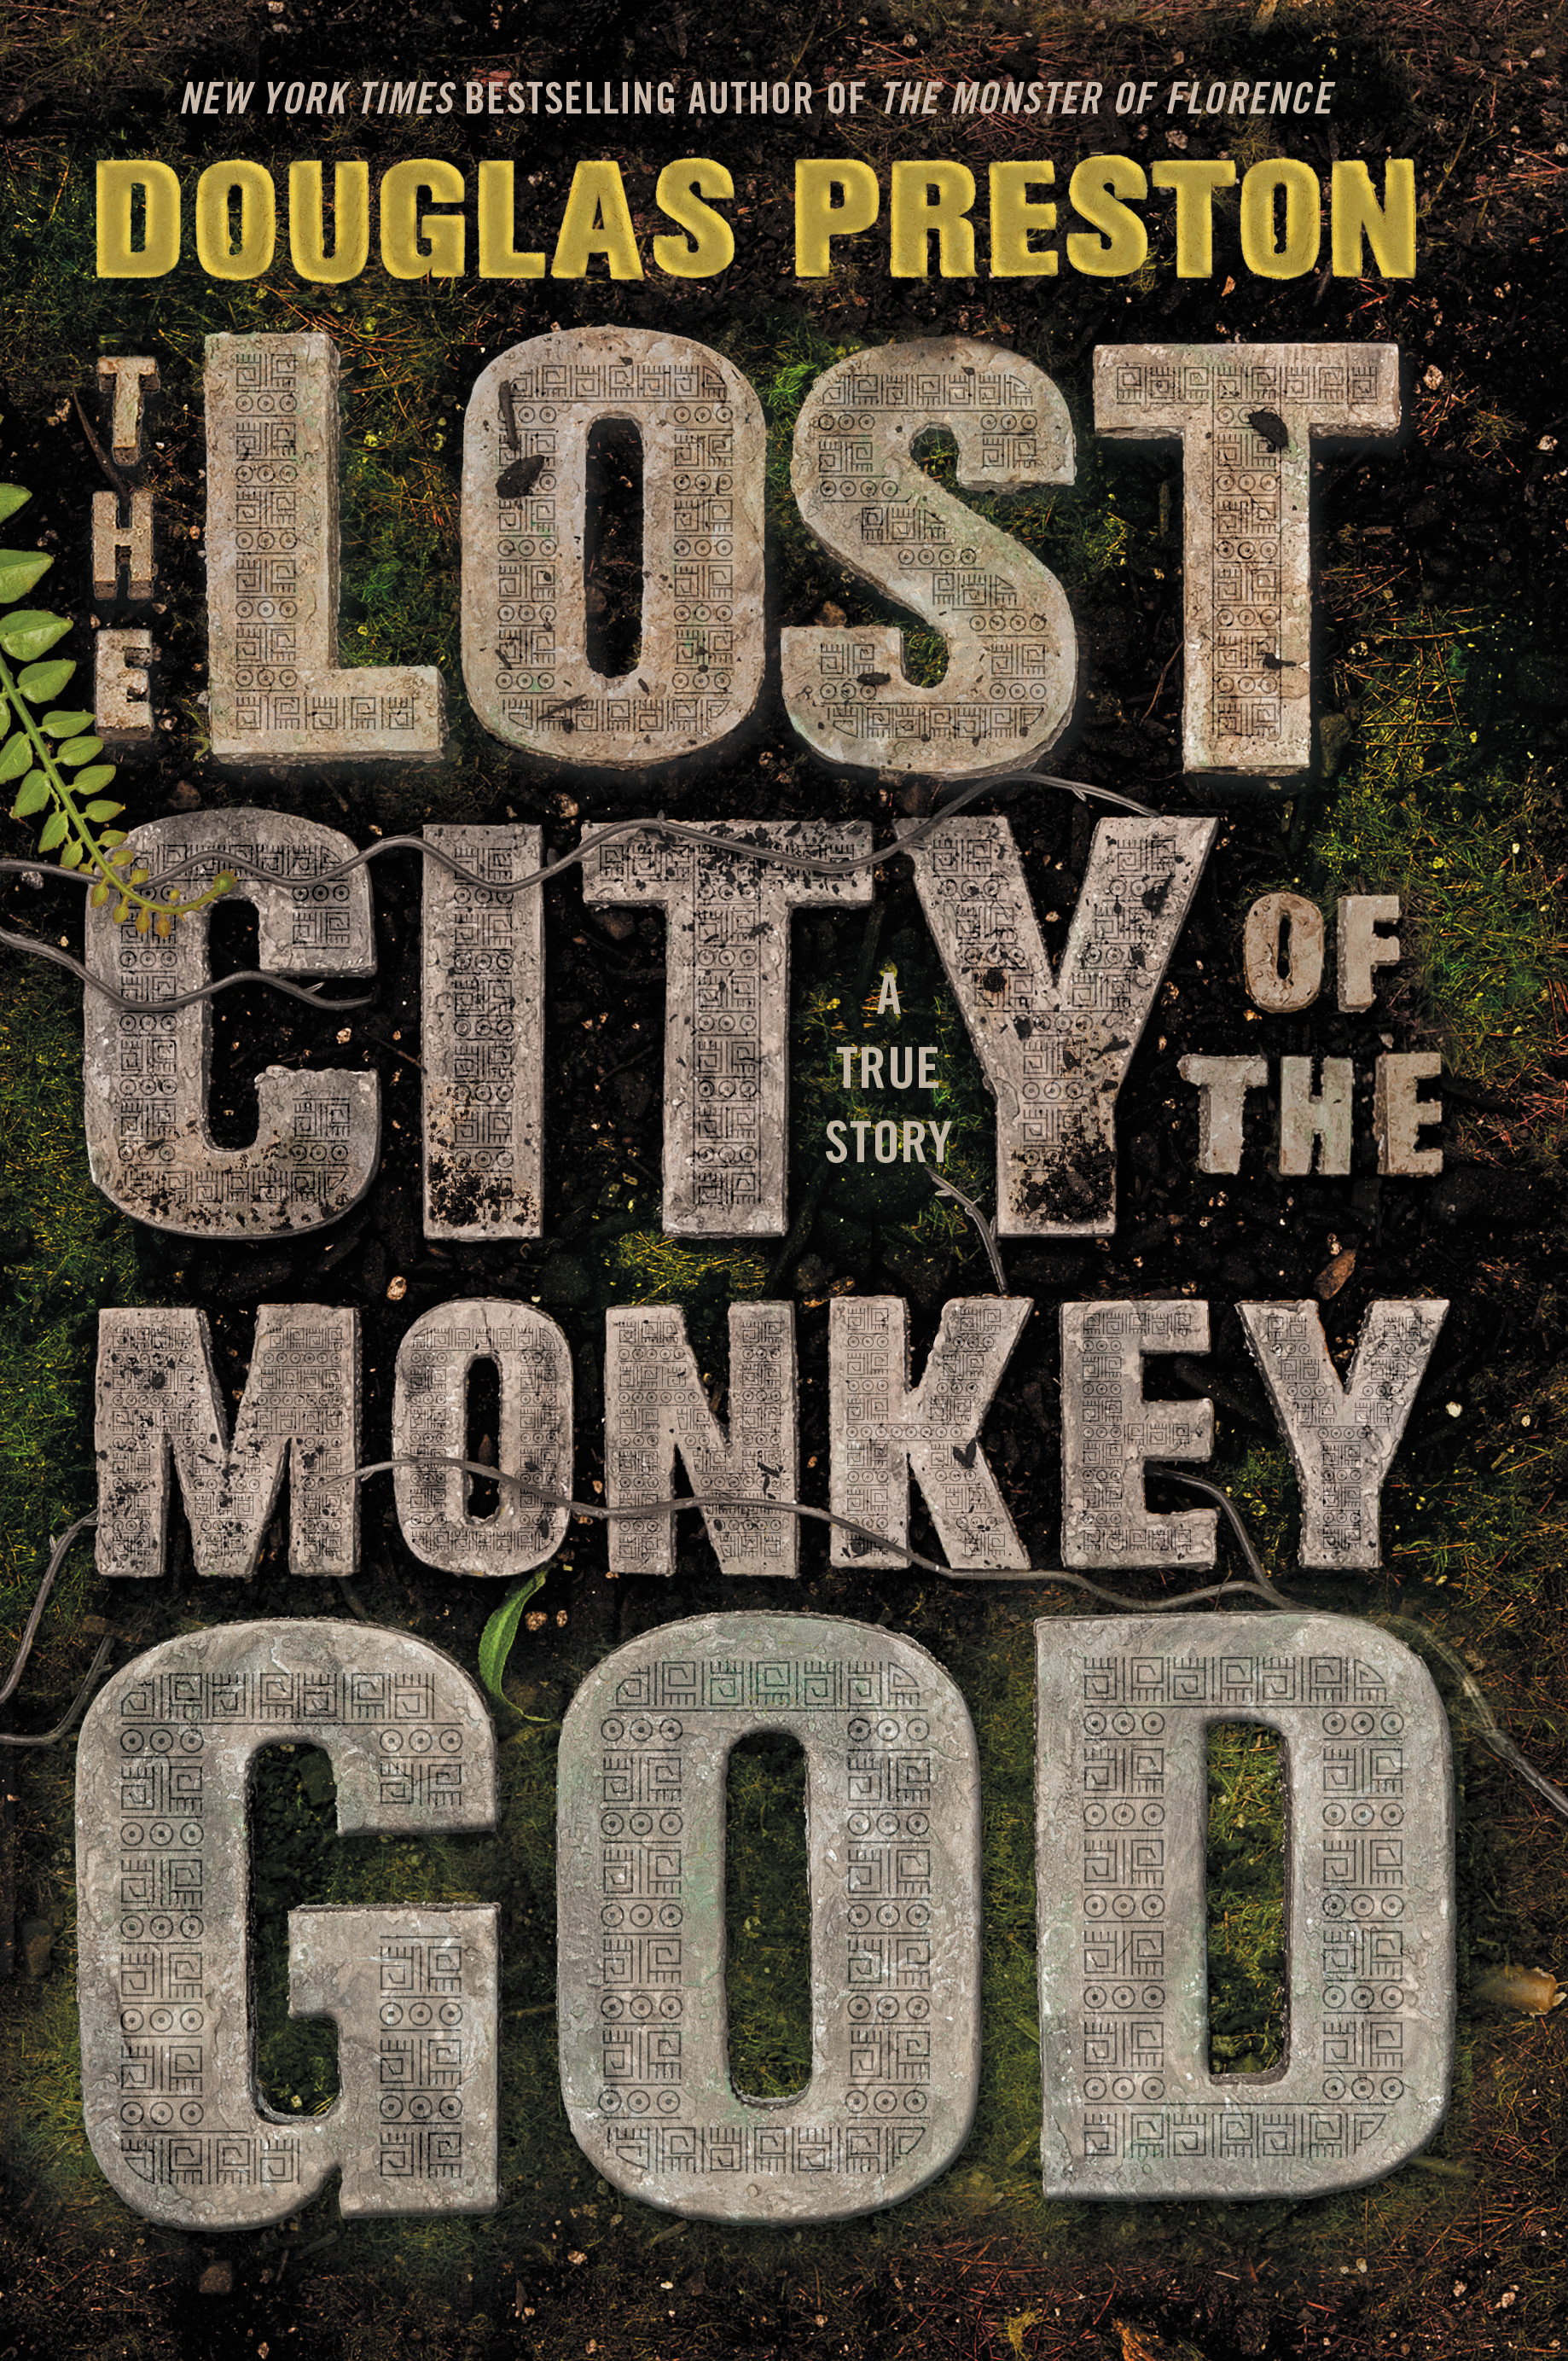 Finding a lost city, and also a flesh-eating illness, with Douglas Preston